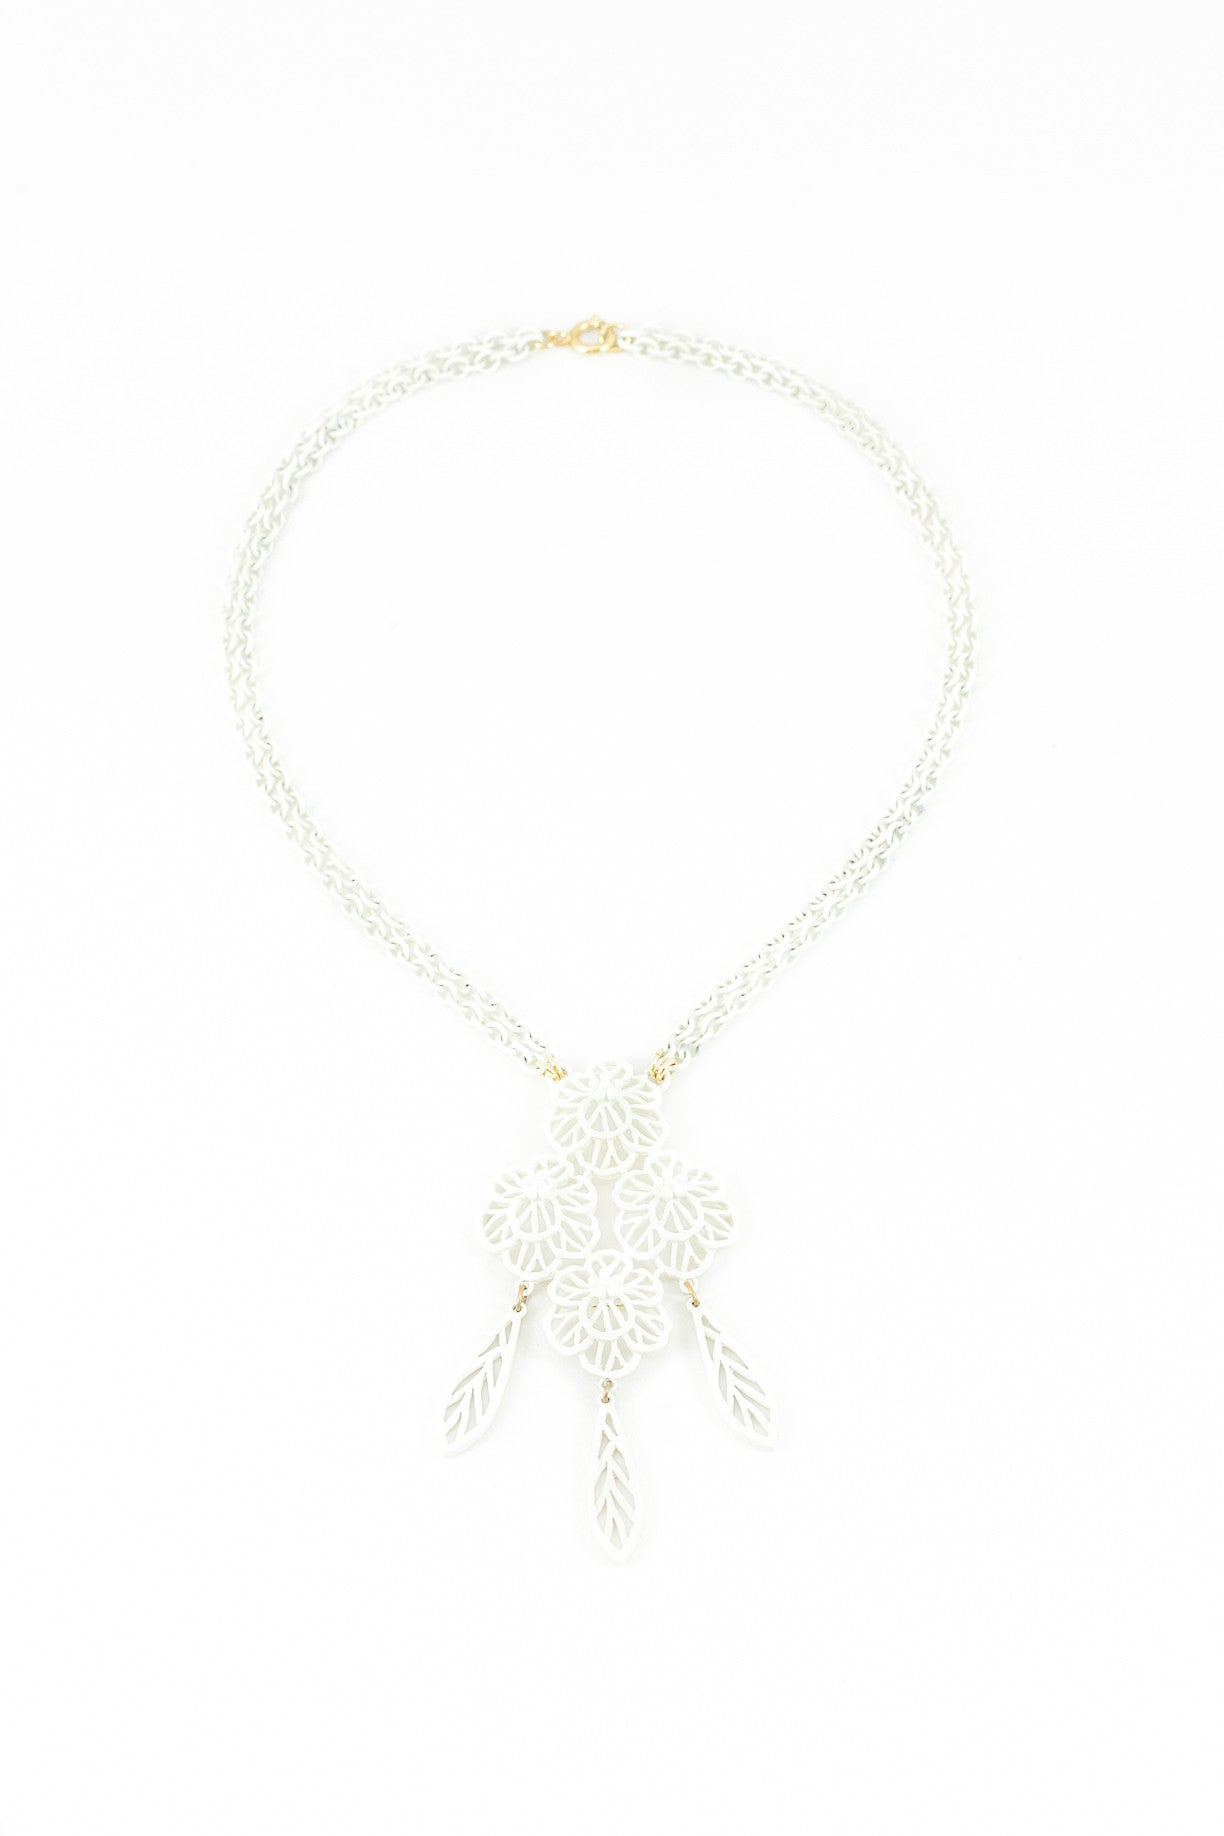 70's__Trifari__White Floral Lace Tassel Necklace